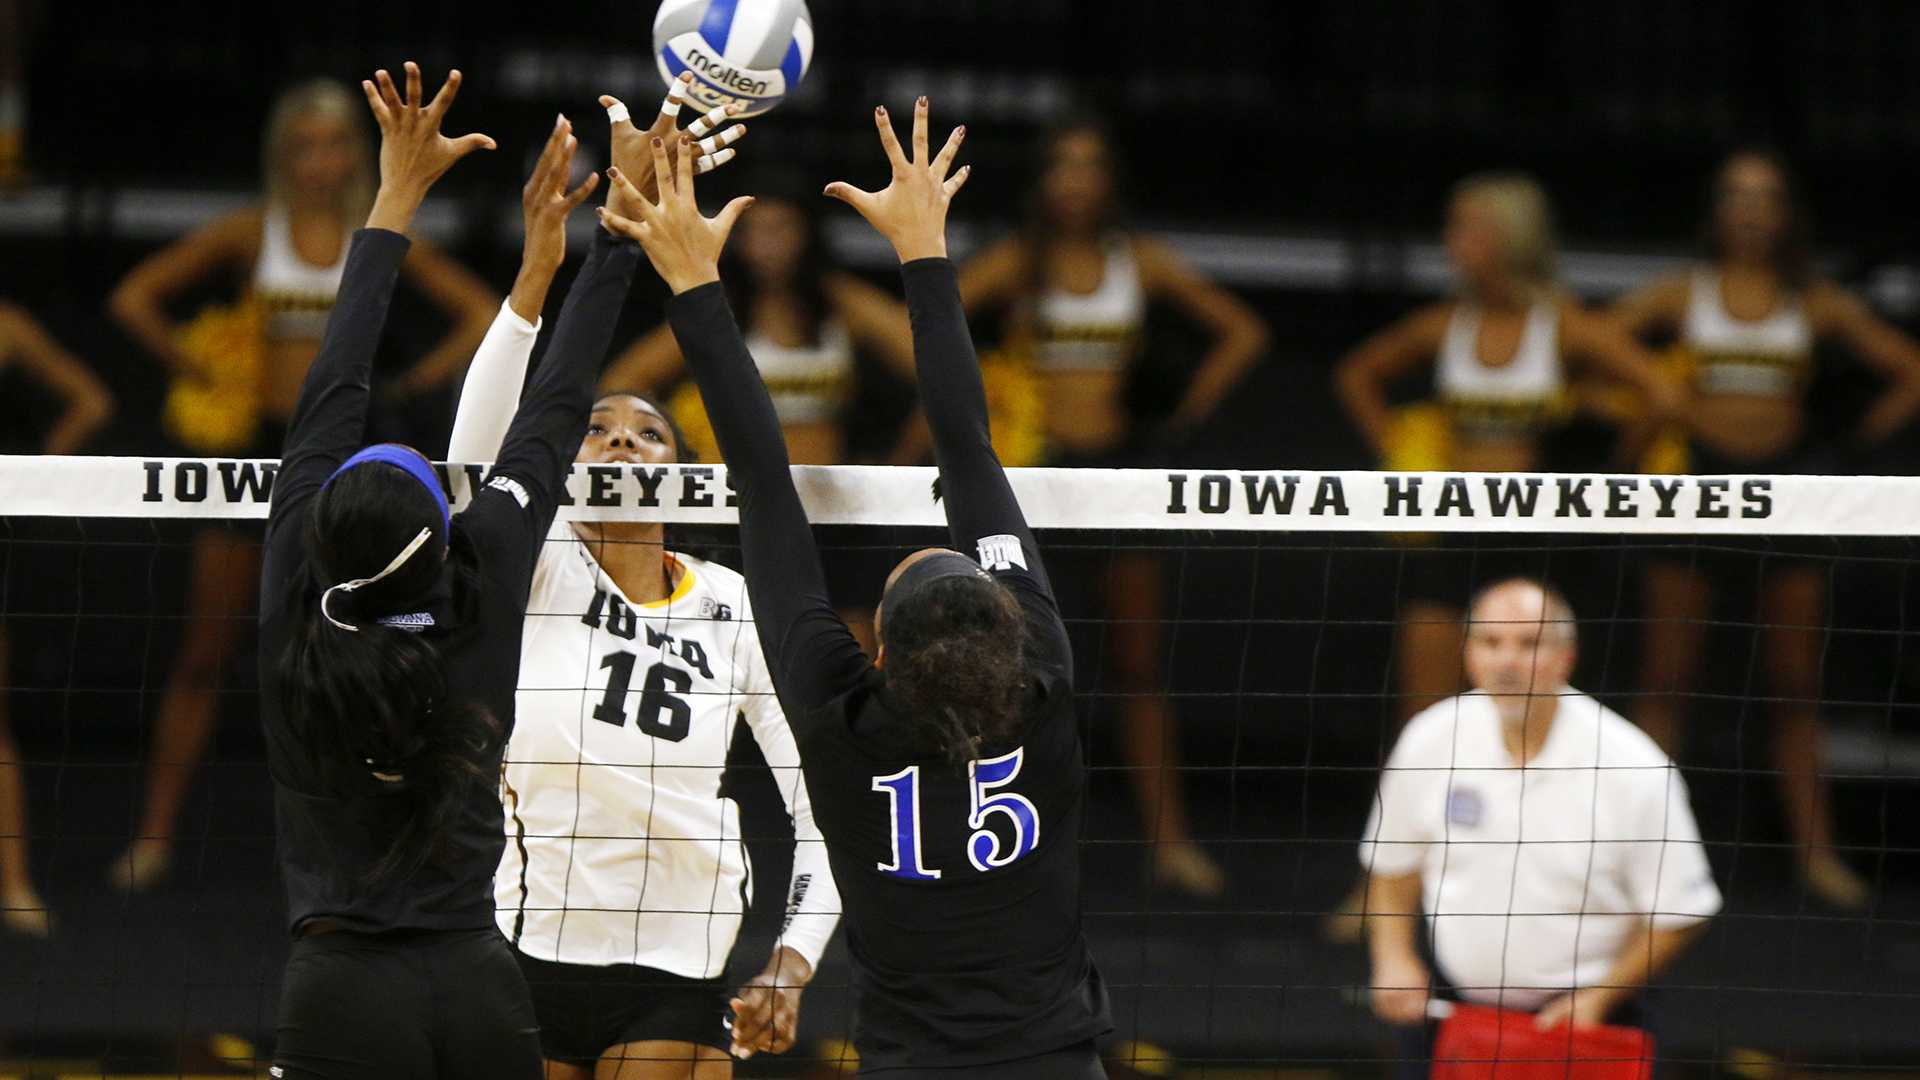 Iowa outside hitter Taylor Louis sets a ball over the net during an NCAA volleyball game between Iowa and Indiana State on Saturday, Sept. 2, 2017. The Hawkeyes defeated the Sycamores, 3-1. (Joseph Cress/The Daily Iowan)